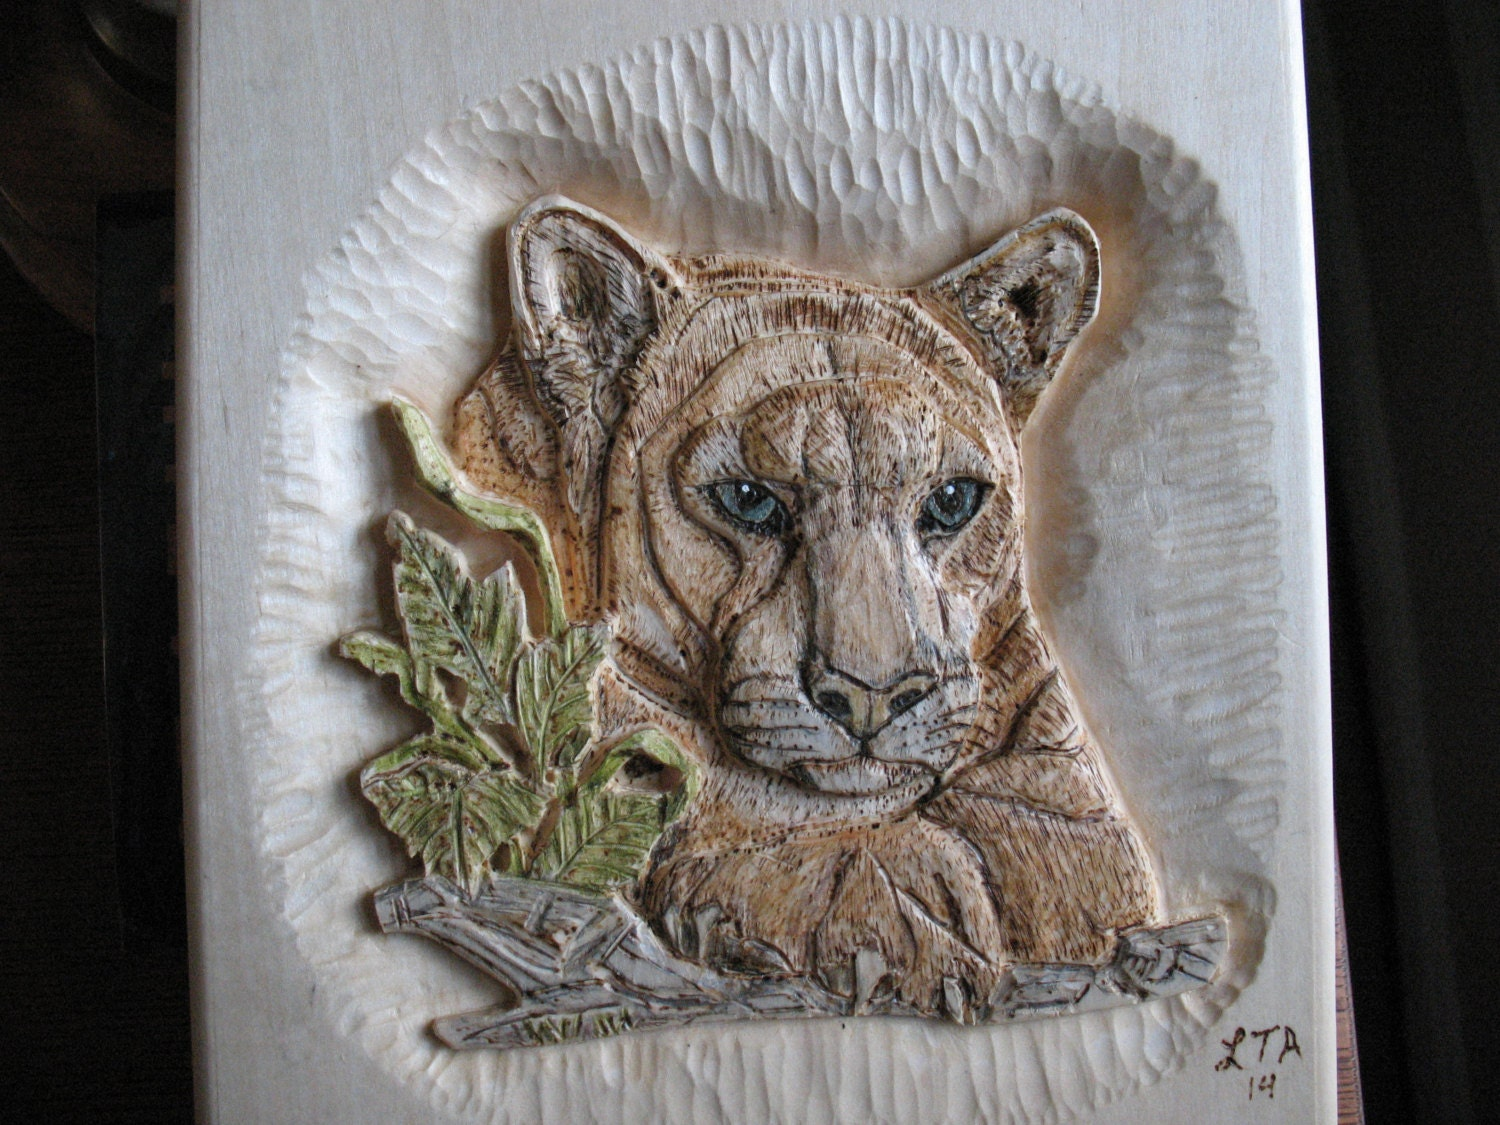 Relief carving of a mountain lion portrait